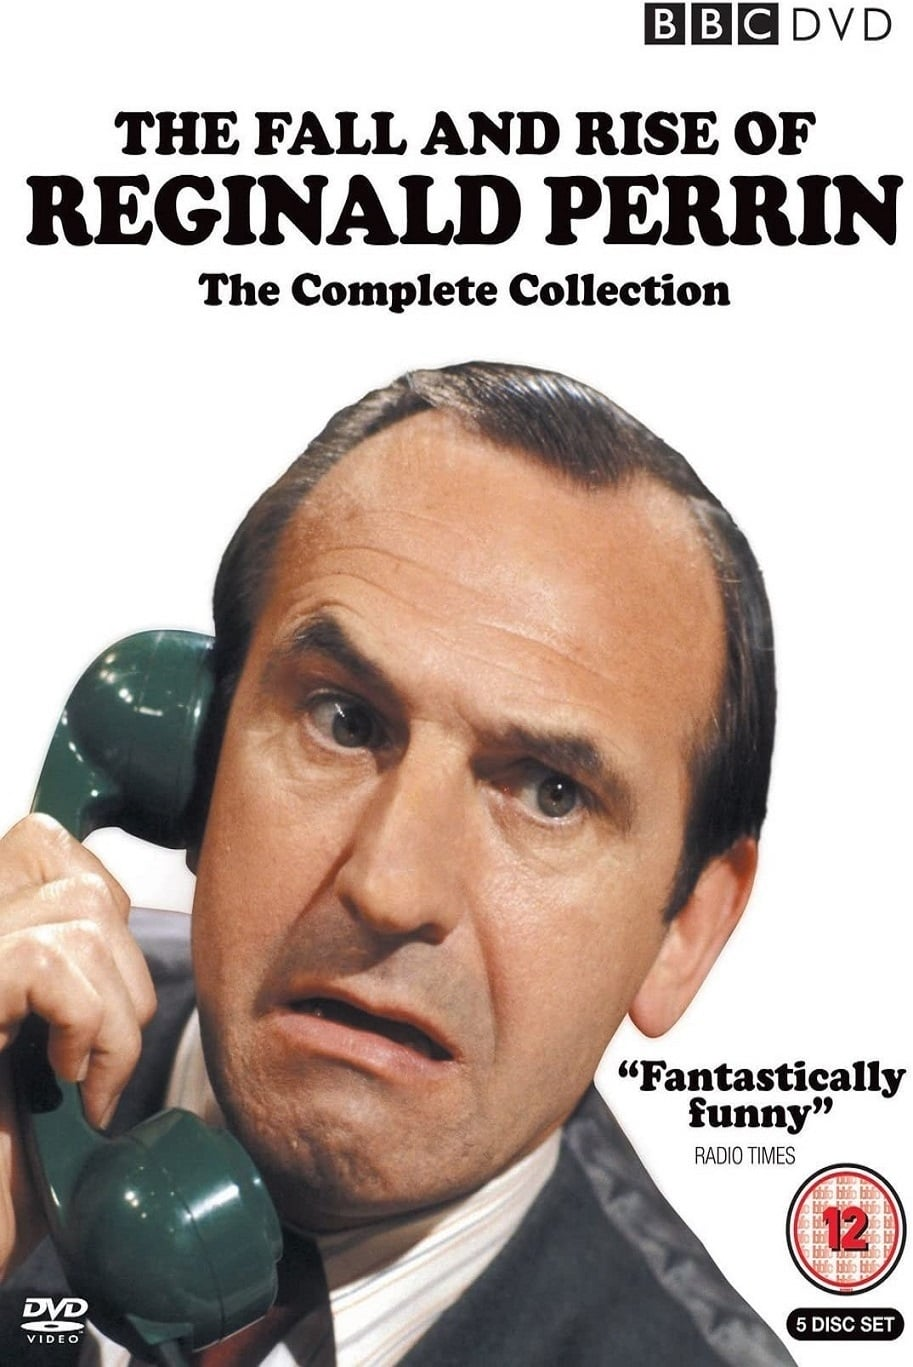 The Fall and Rise of Reginald Perrin (1976)